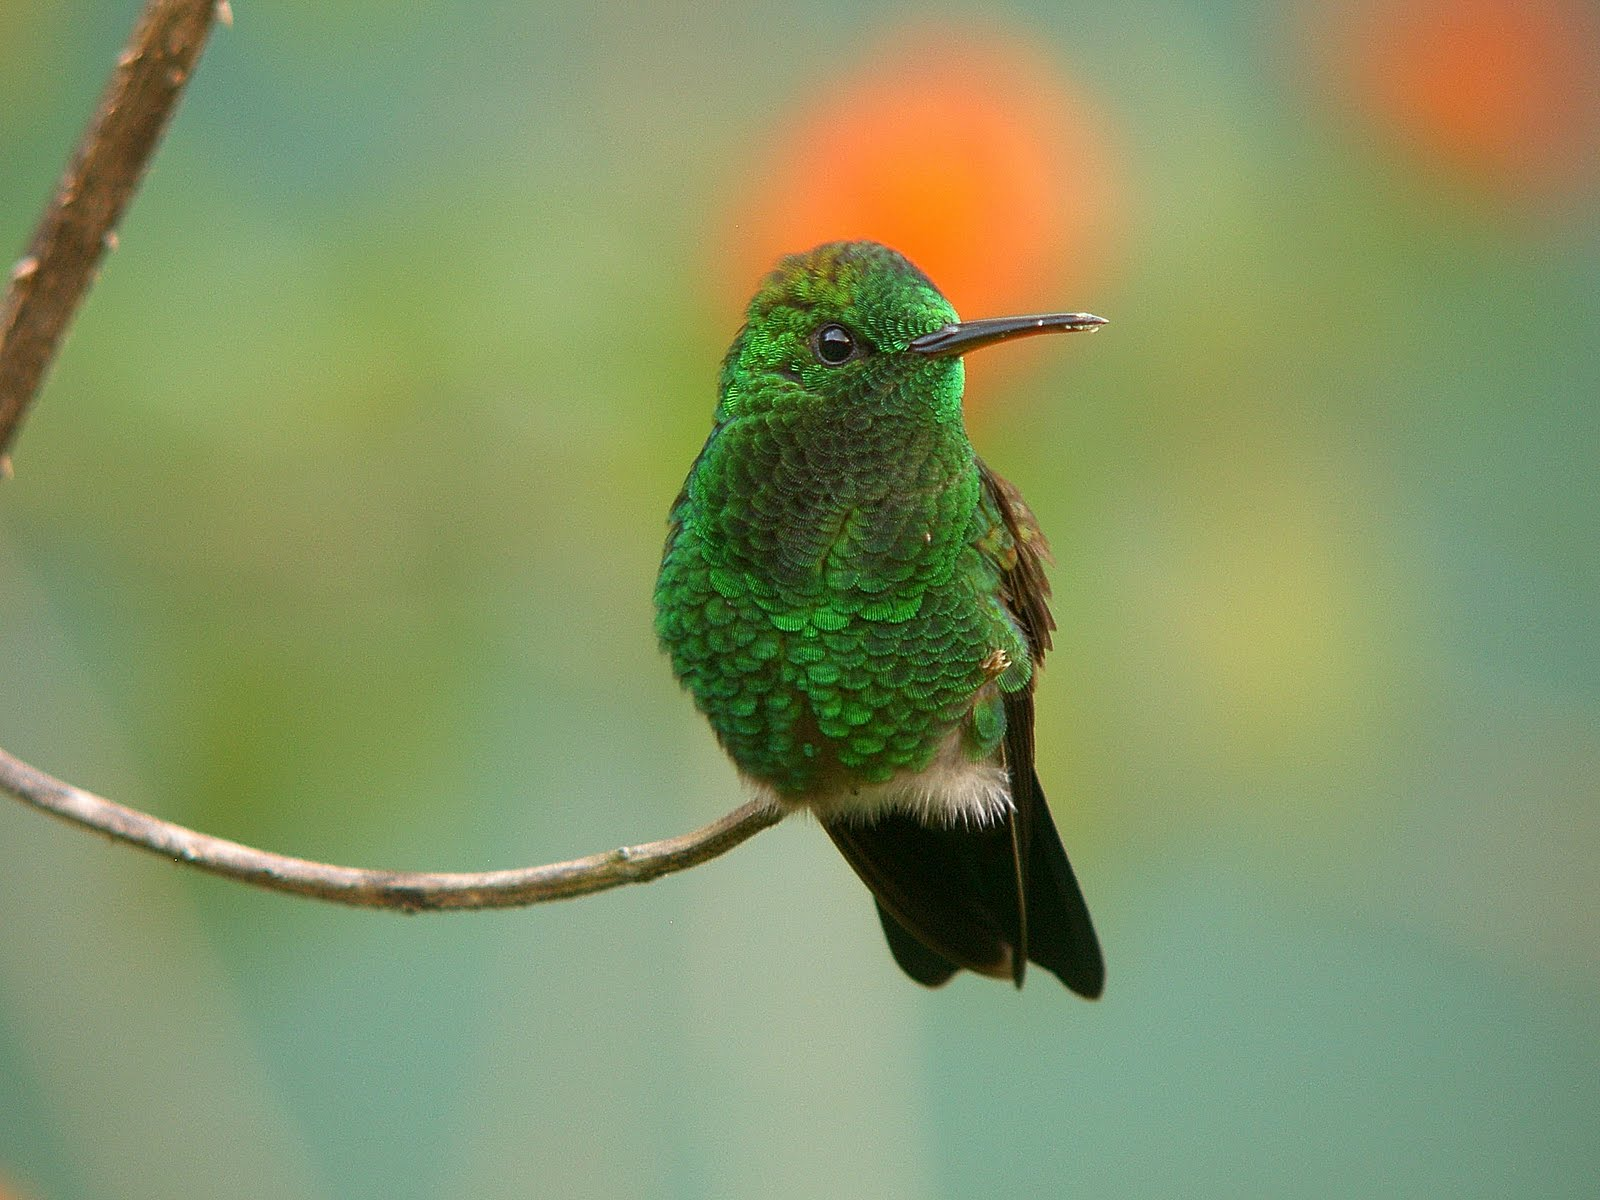 Unique animals blogs hummingbirds pictures hummingbirds Pictures of birds